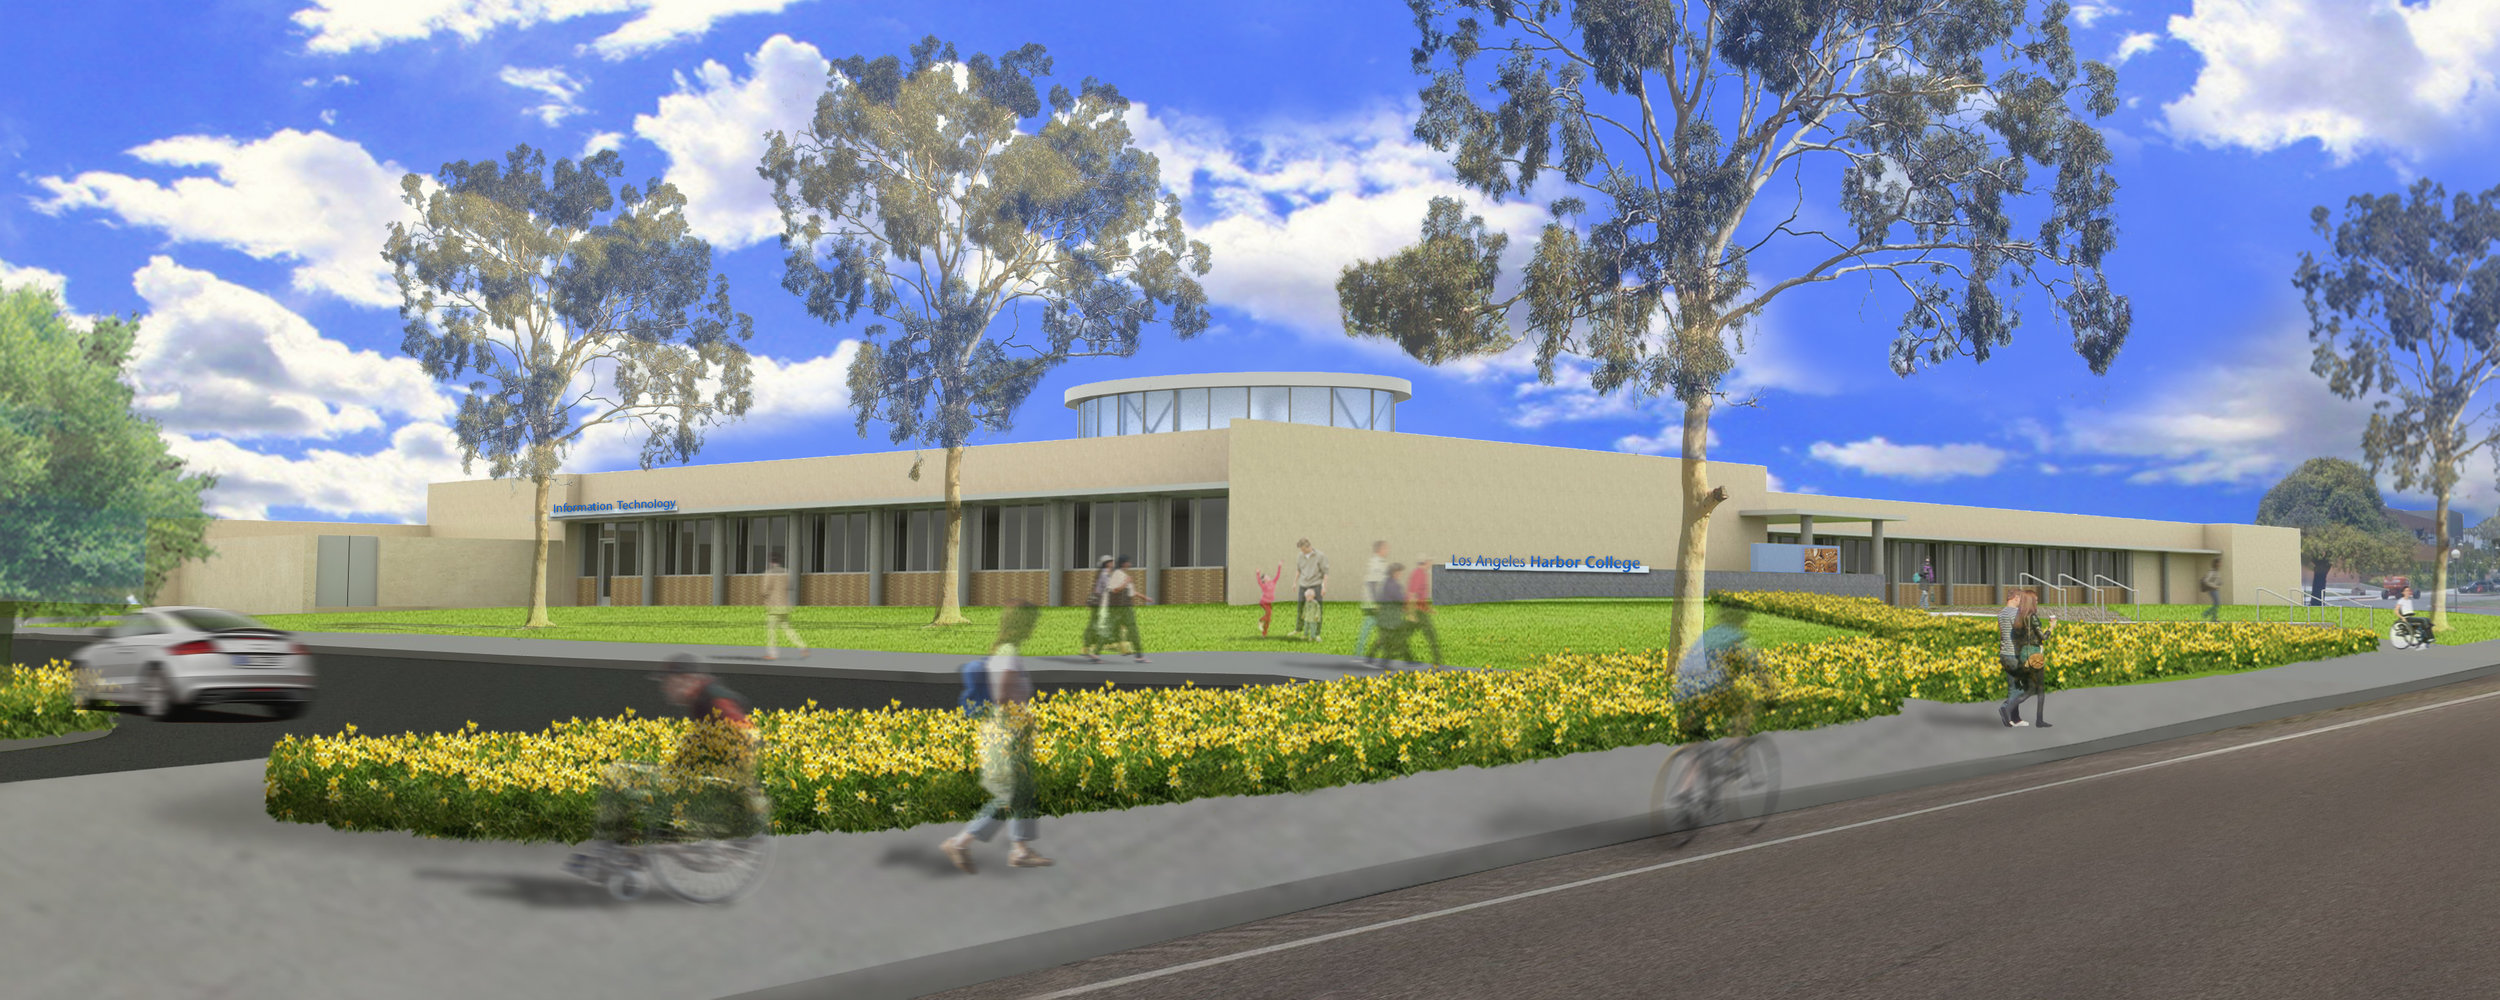 LACCD Harbor College Campus Improvements